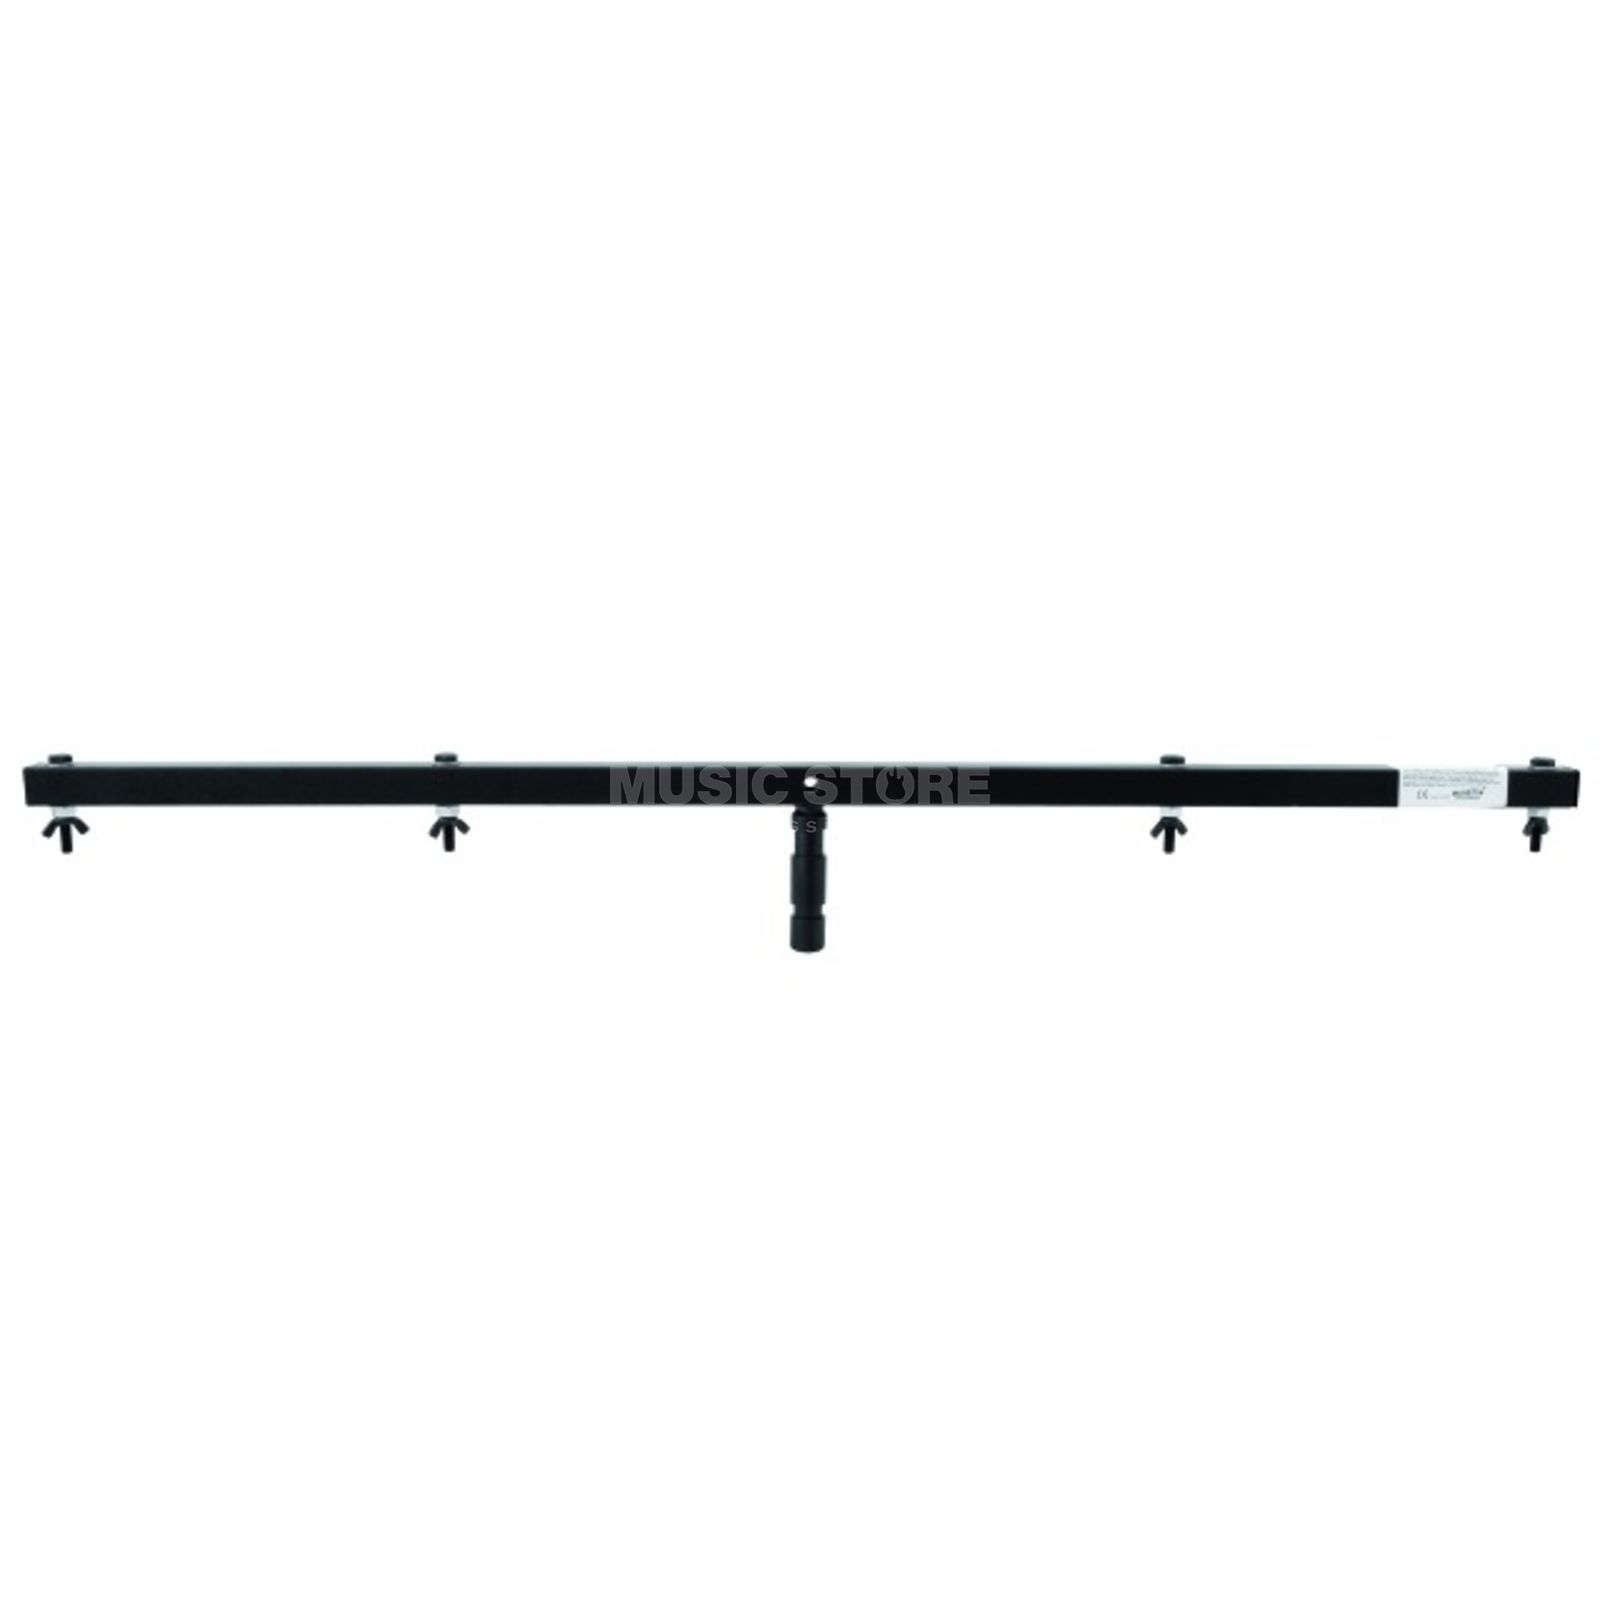 lightmaXX T-bar with TV spigot for 4 lamps Produktbillede